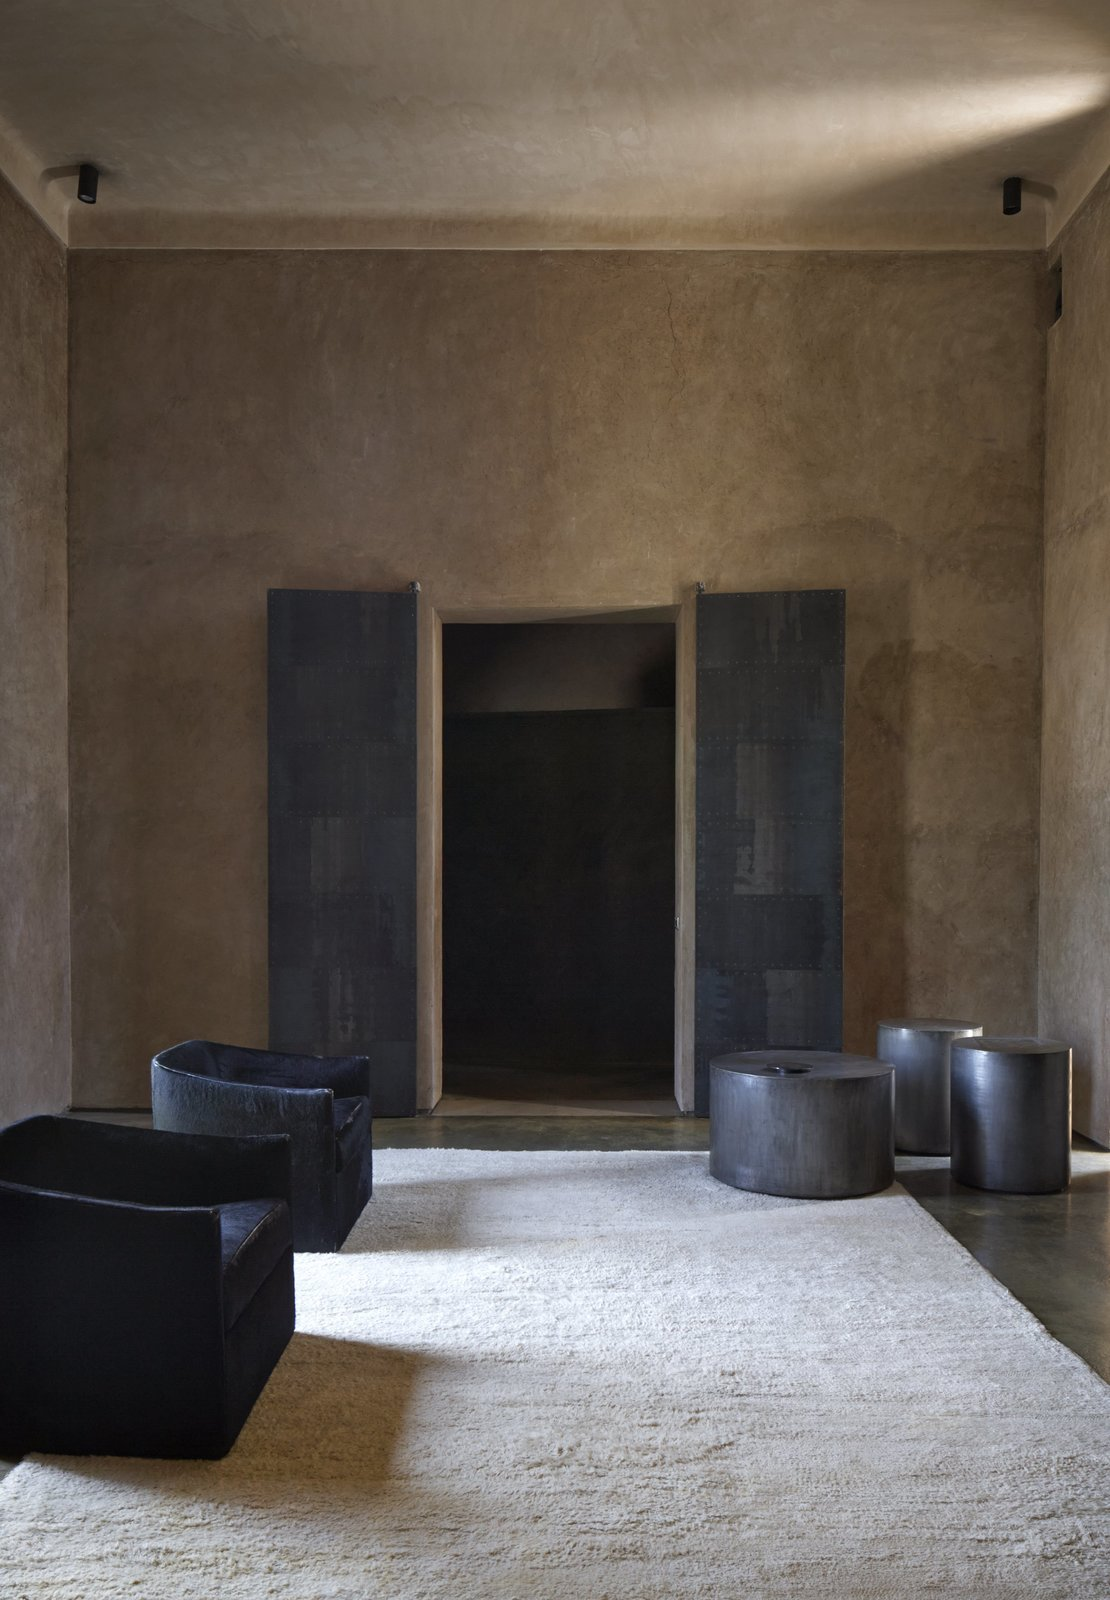 Living Room, Ceiling Lighting, Chair, Concrete Floor, End Tables, and Rug Floor Interiors of Villa D.  Photo 3 of 10 in 4 Enchanting Moroccan Villas by French Duo Studio KO